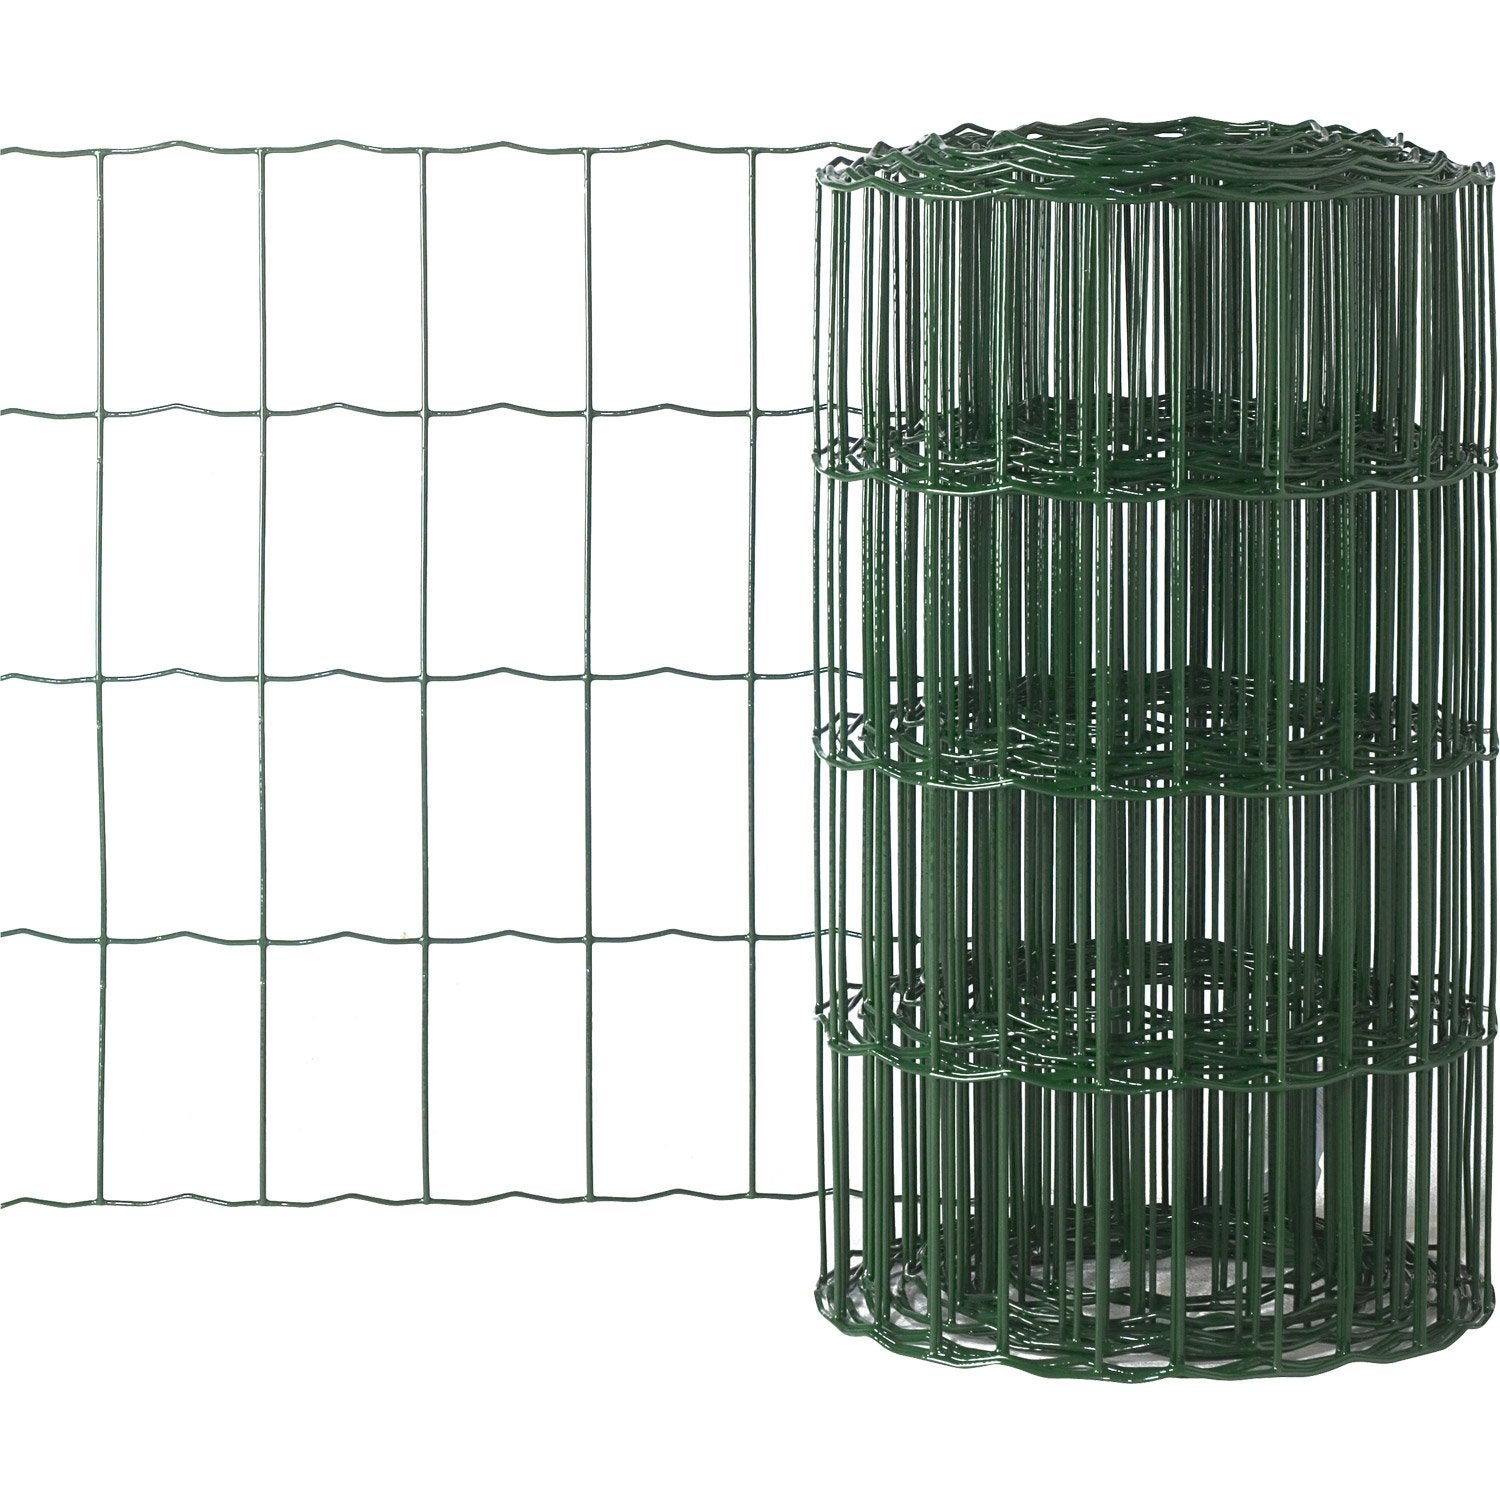 Grillage soud vert h 0 4 x m maille de x mm leroy merlin - Grillage cloture leroy merlin ...